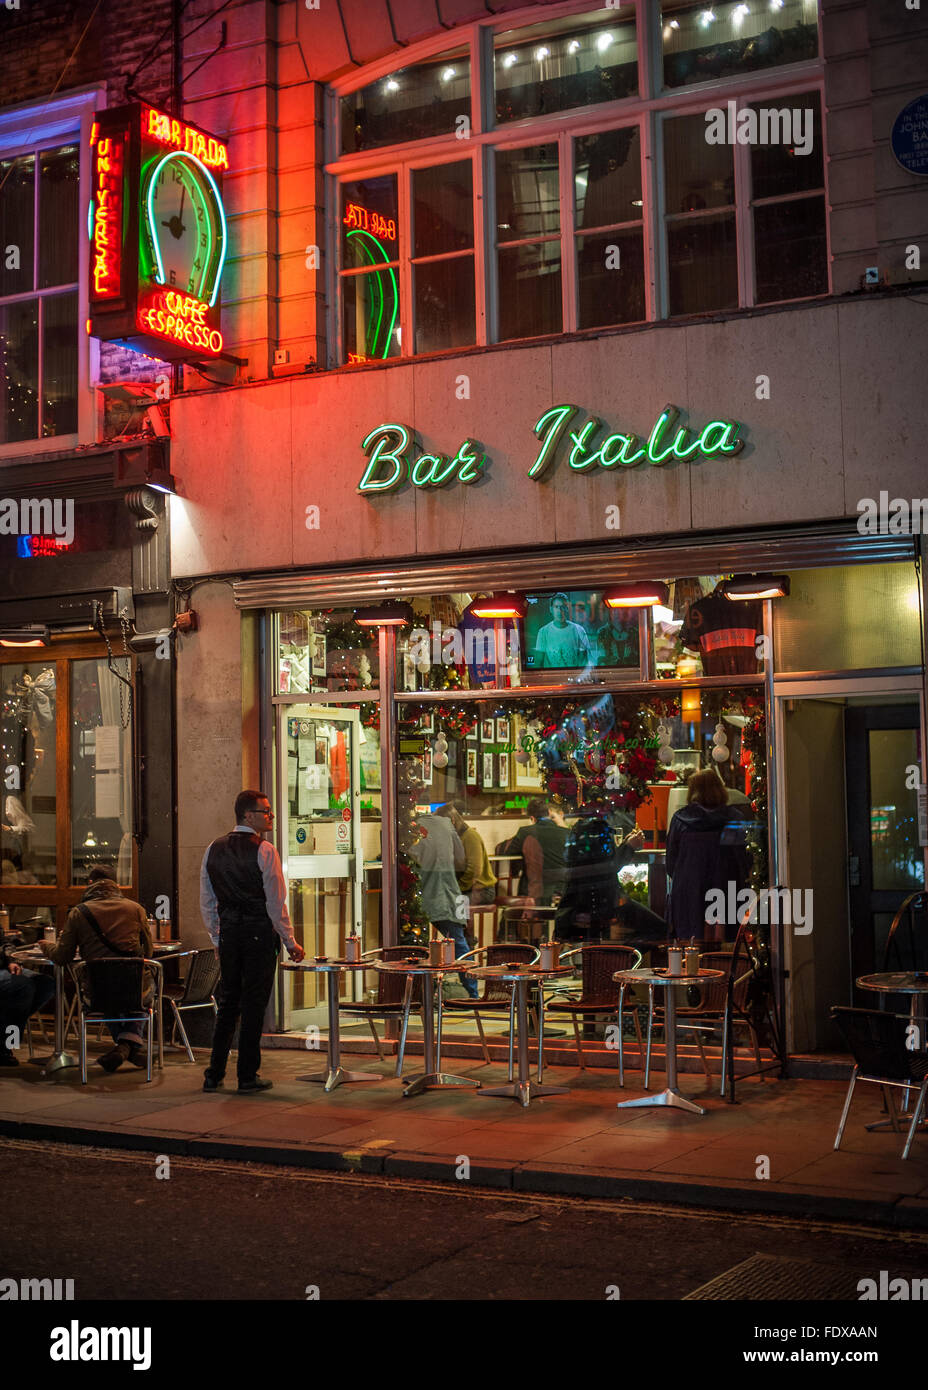 'Bar Italia' neon lights and nightlife, Soho, London - Stock Image